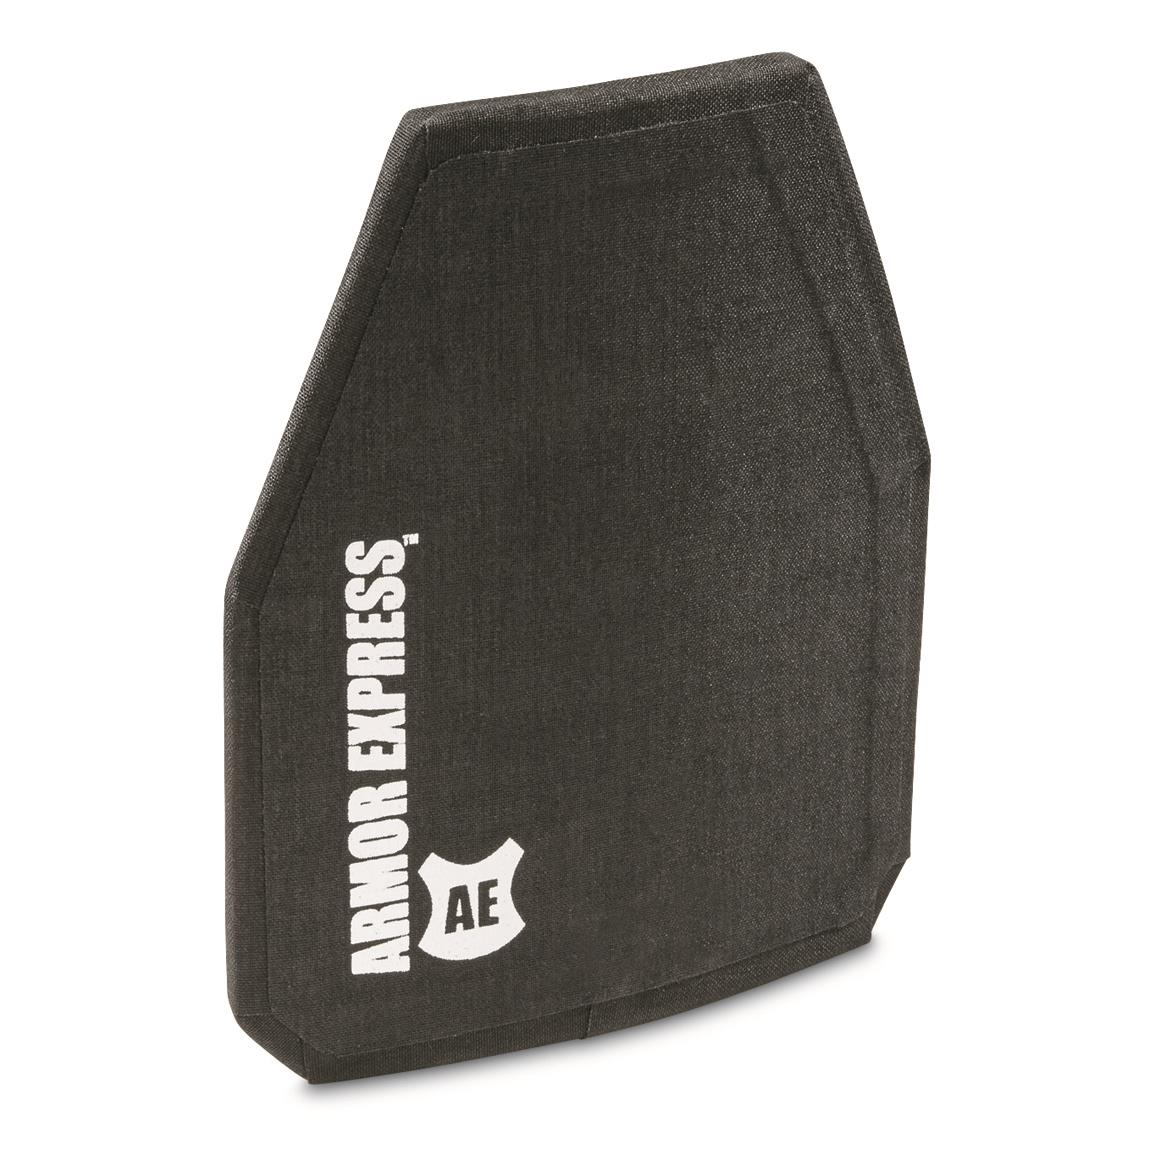 "Armor Express H-Shock Special Threat Armor Plate, 10x12"" Shooters Cut, Black"